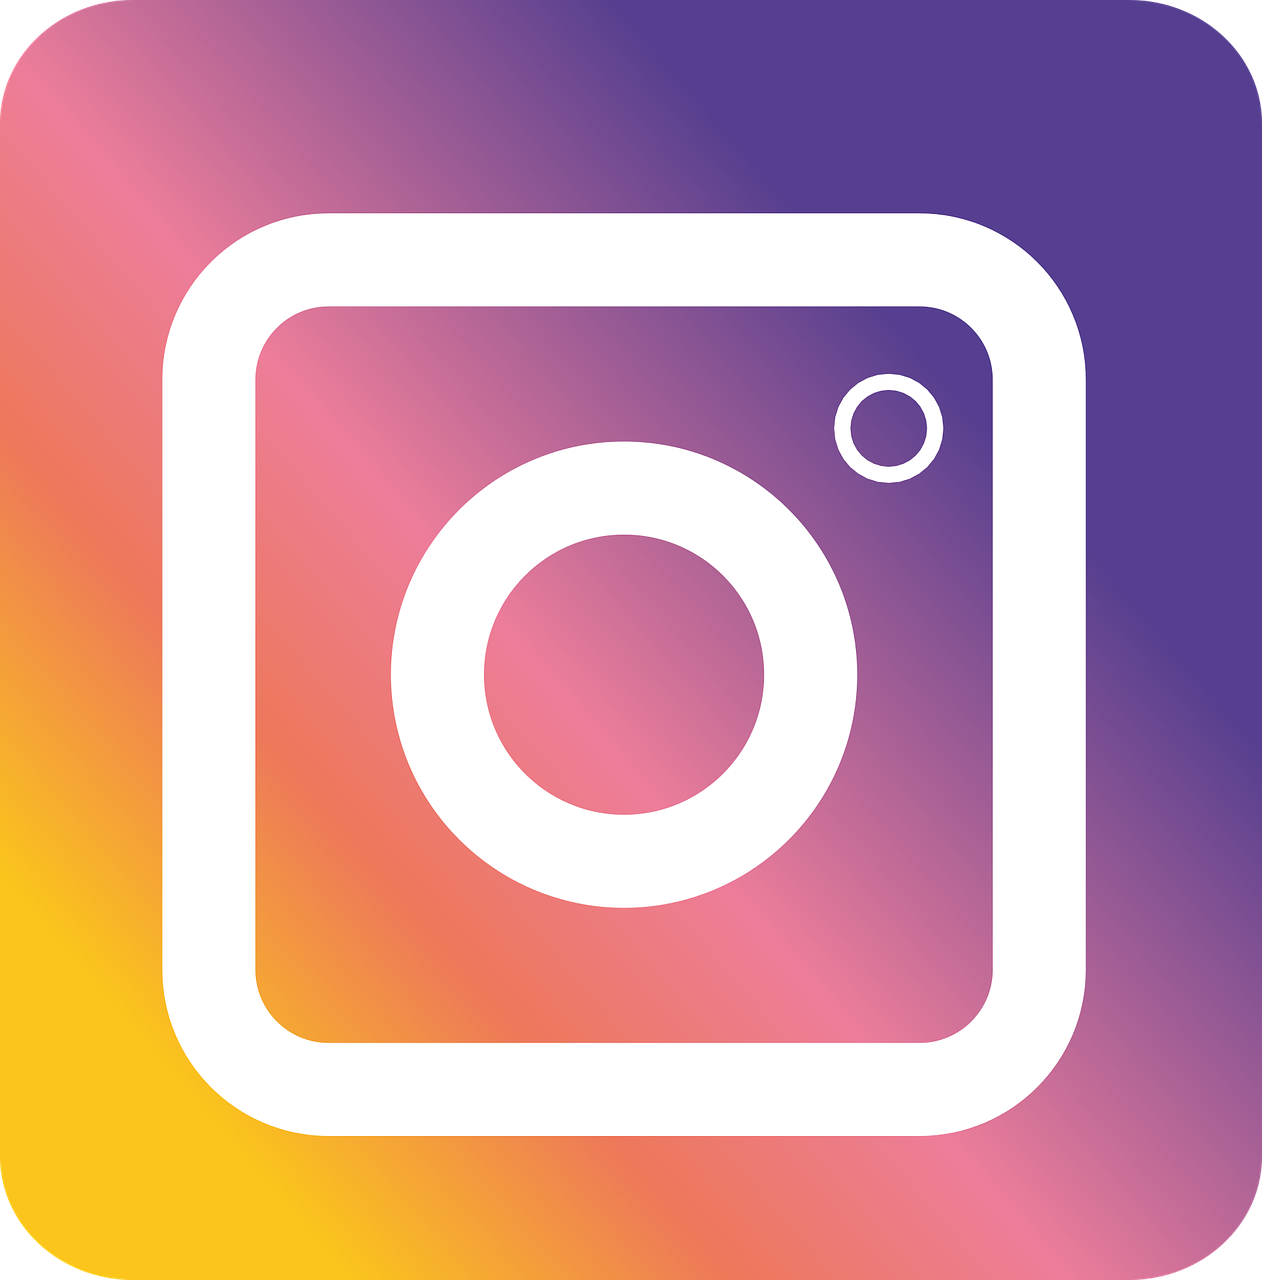 Instagram introduces a Reels button on its home screen so you might finally watch some